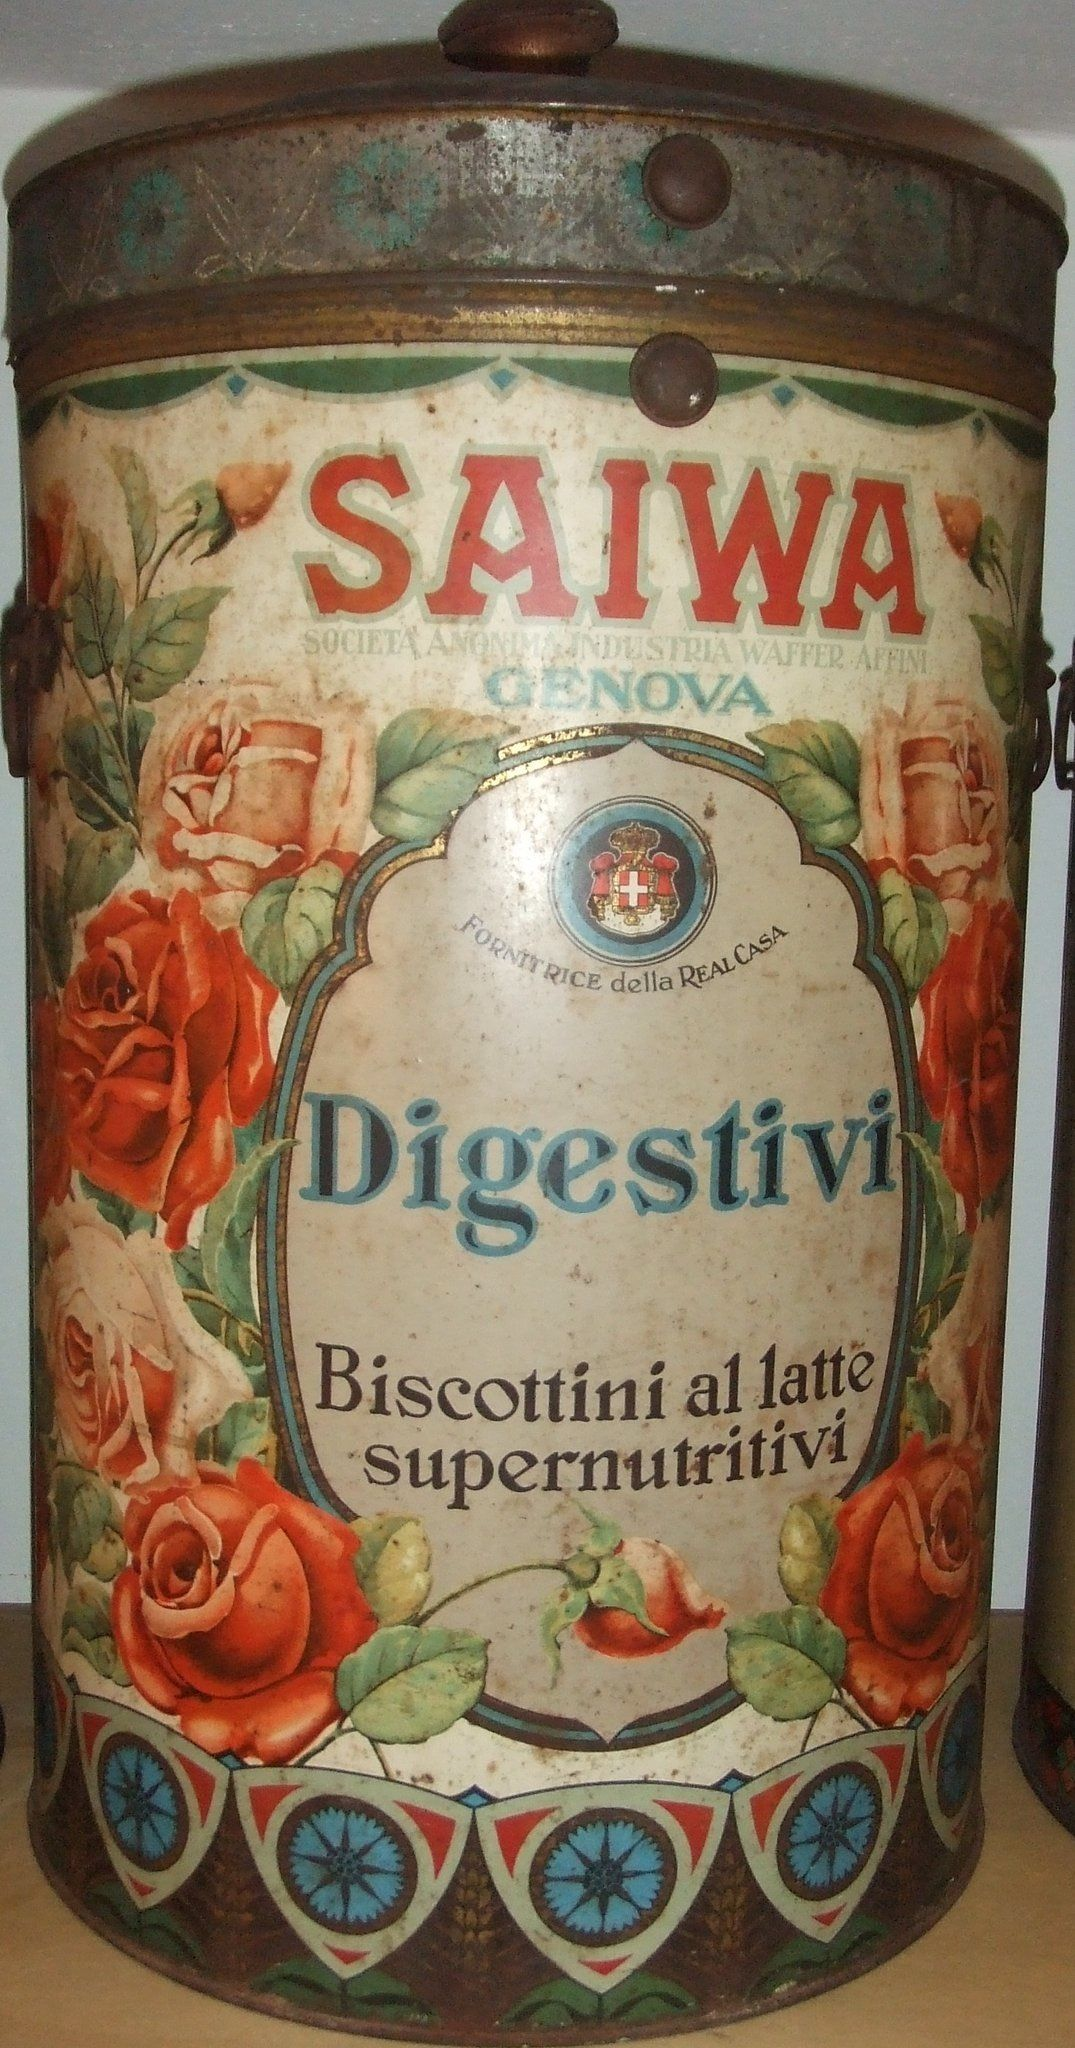 Vintage Gläser Saiwa Italian Biscuit Tin Tin Boxes Cool Jars Glasses Tin